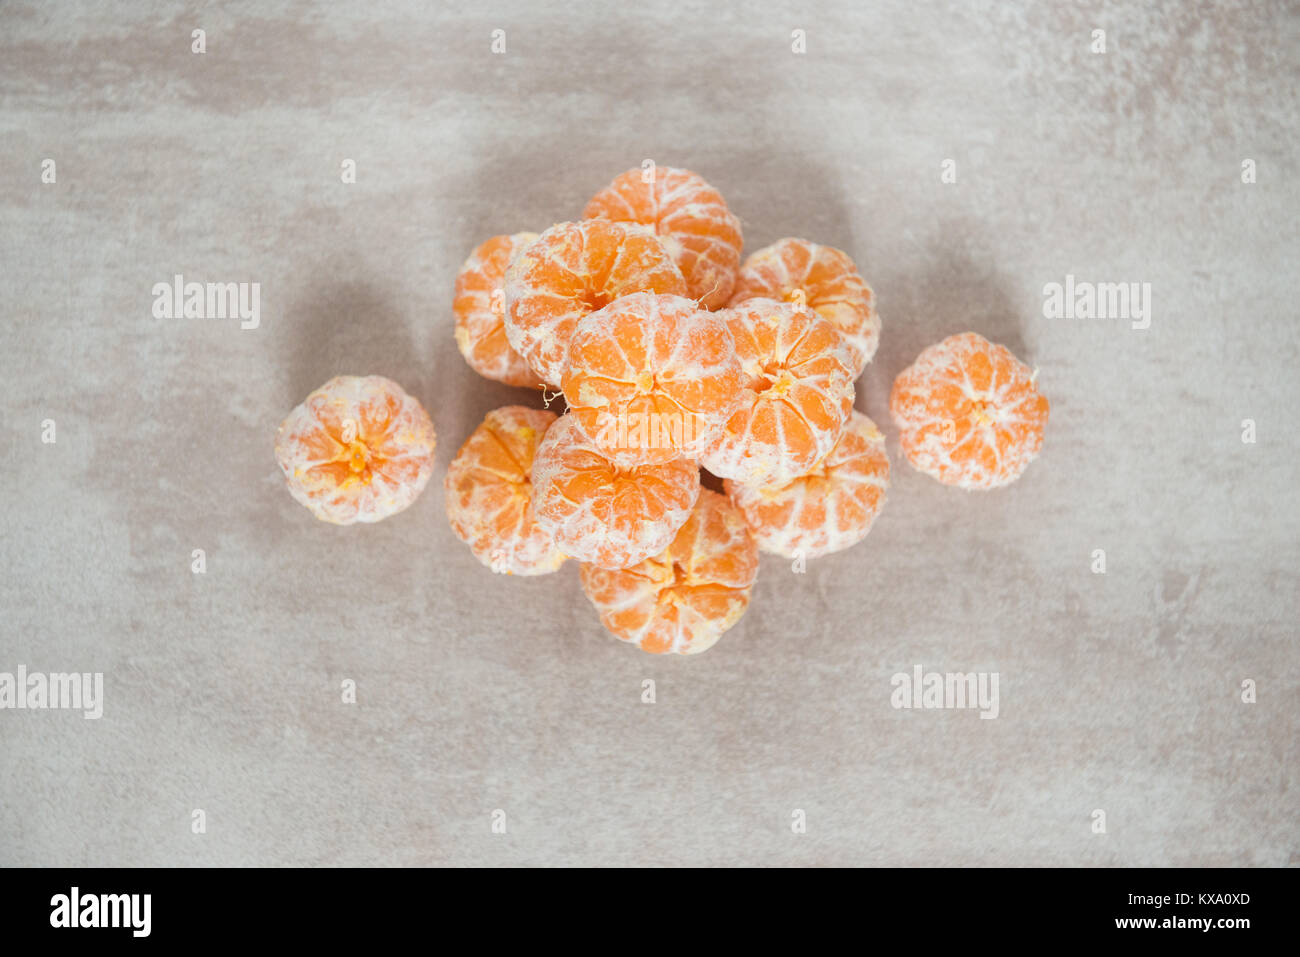 Orange Mandarines, Clementines, Tangerines or small oranges - Stock Image